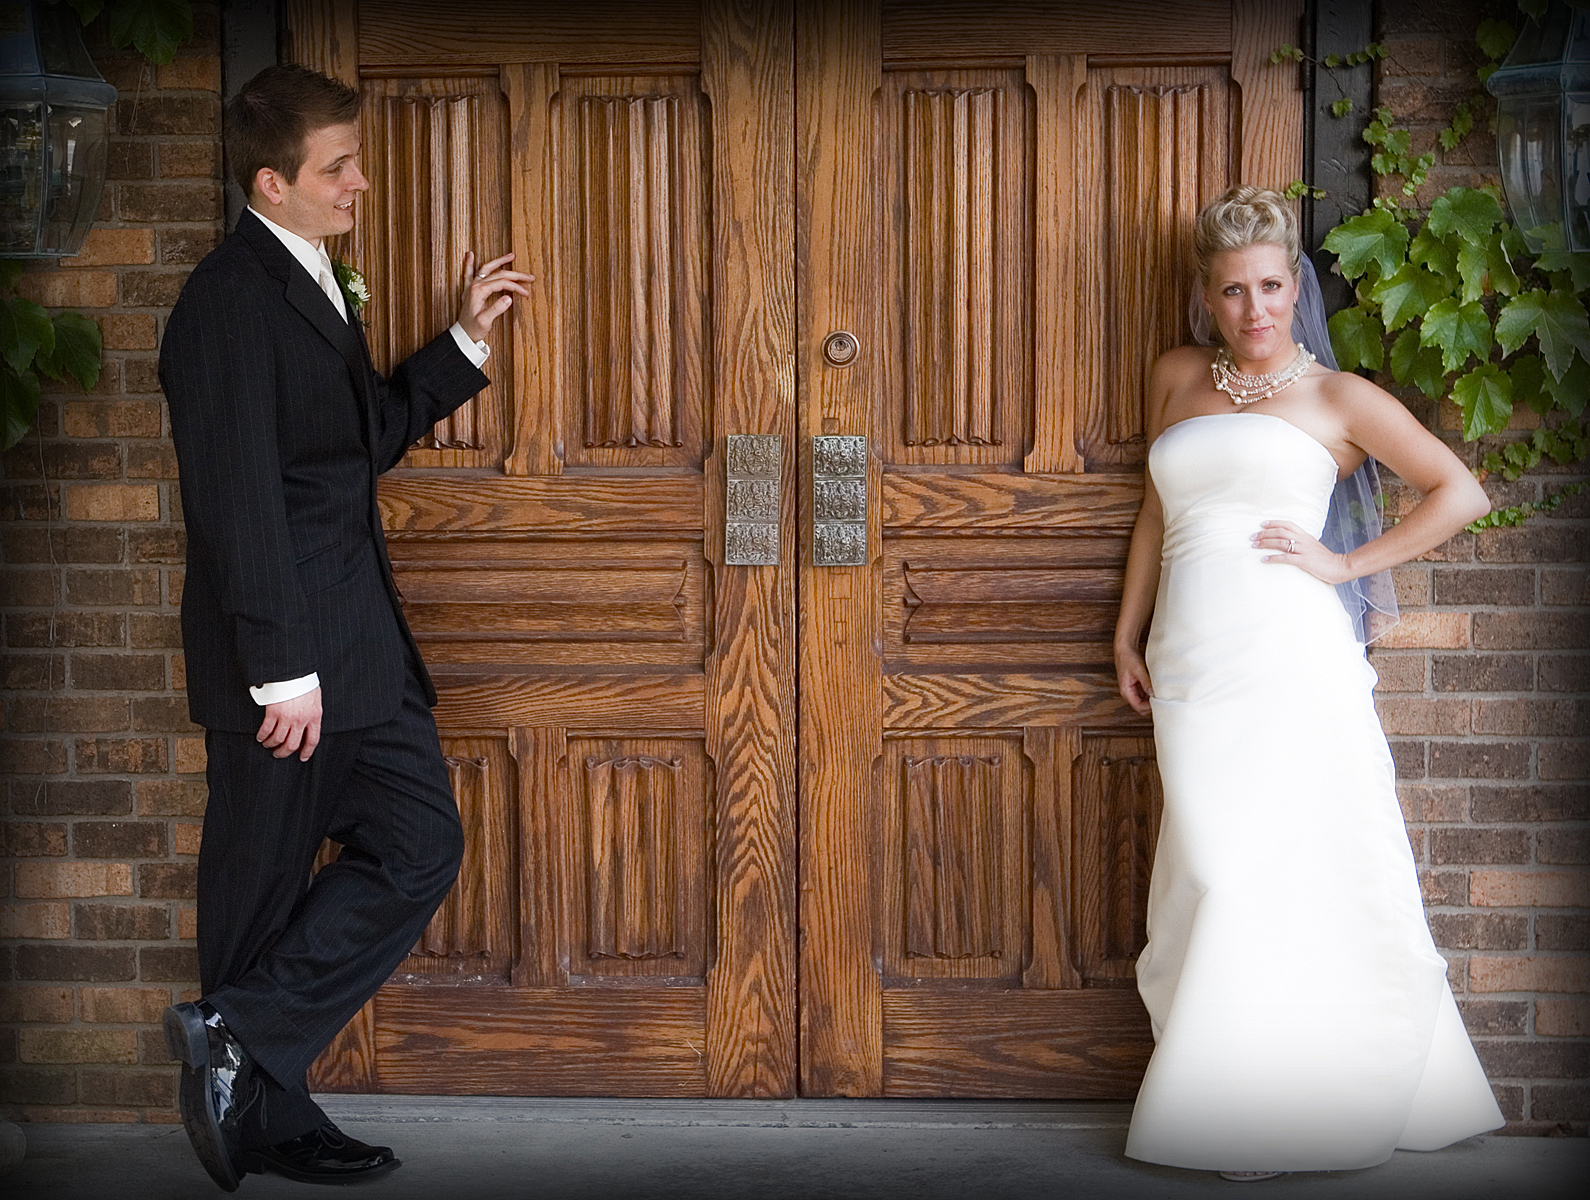 Ceremony, Flowers & Decor, Wedding Dresses, Fashion, dress, Summer, Bride, Outdoor, Groom, Door, Pheifer photography llc, Summer Wedding Dresses